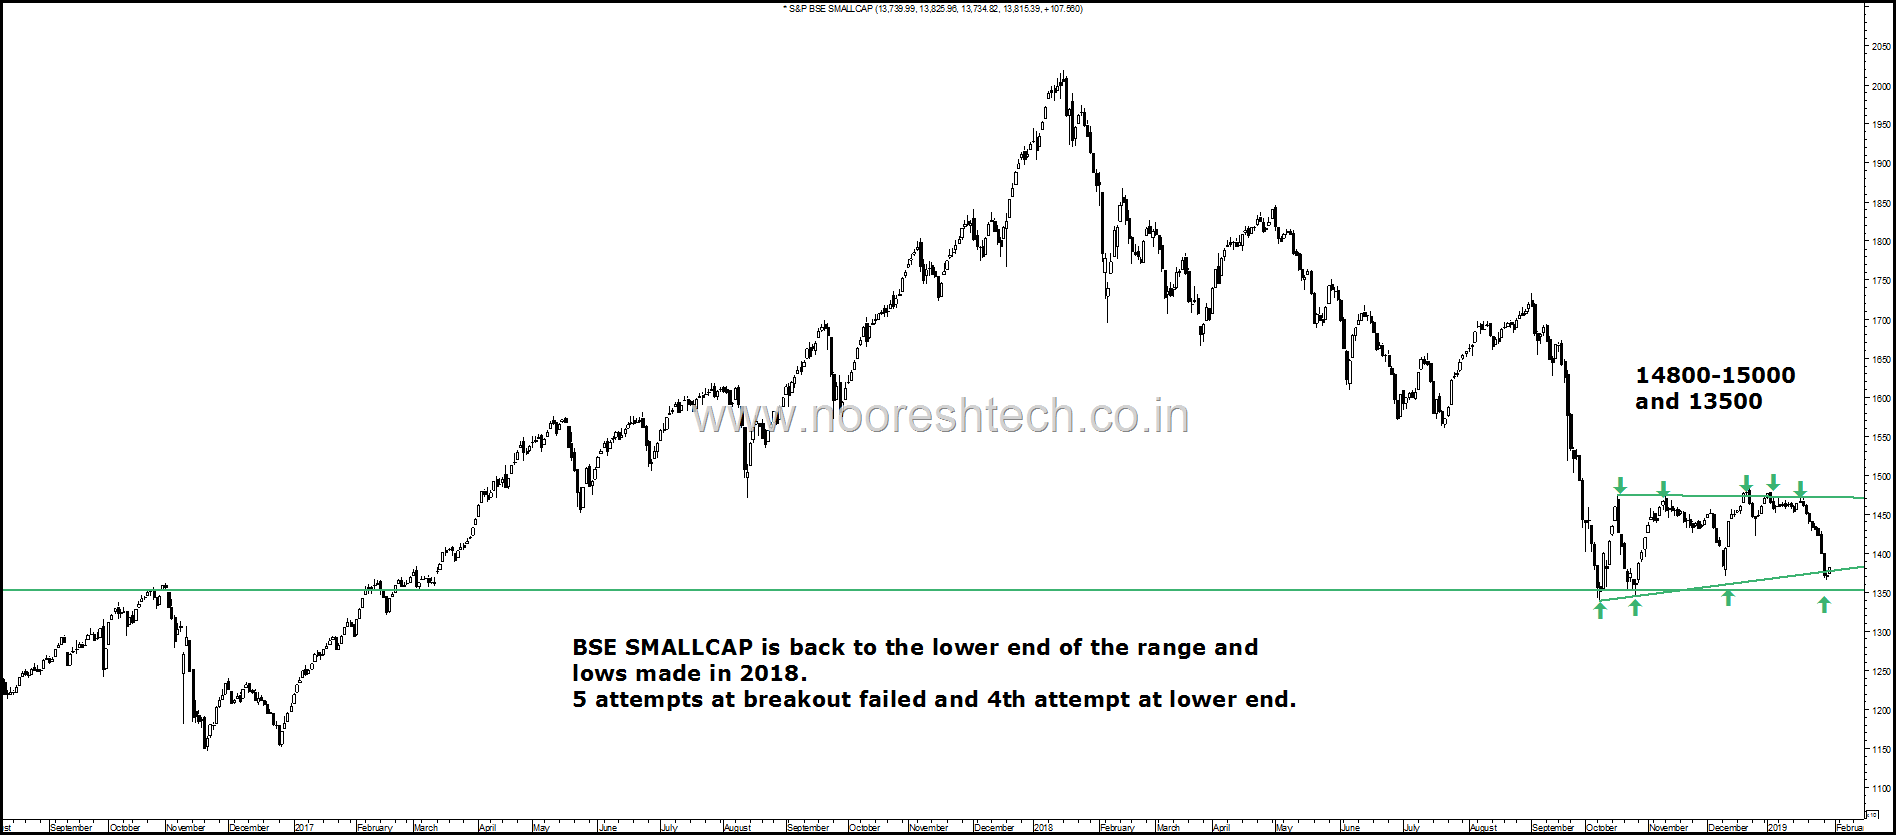 RangeBound Smallcap Index